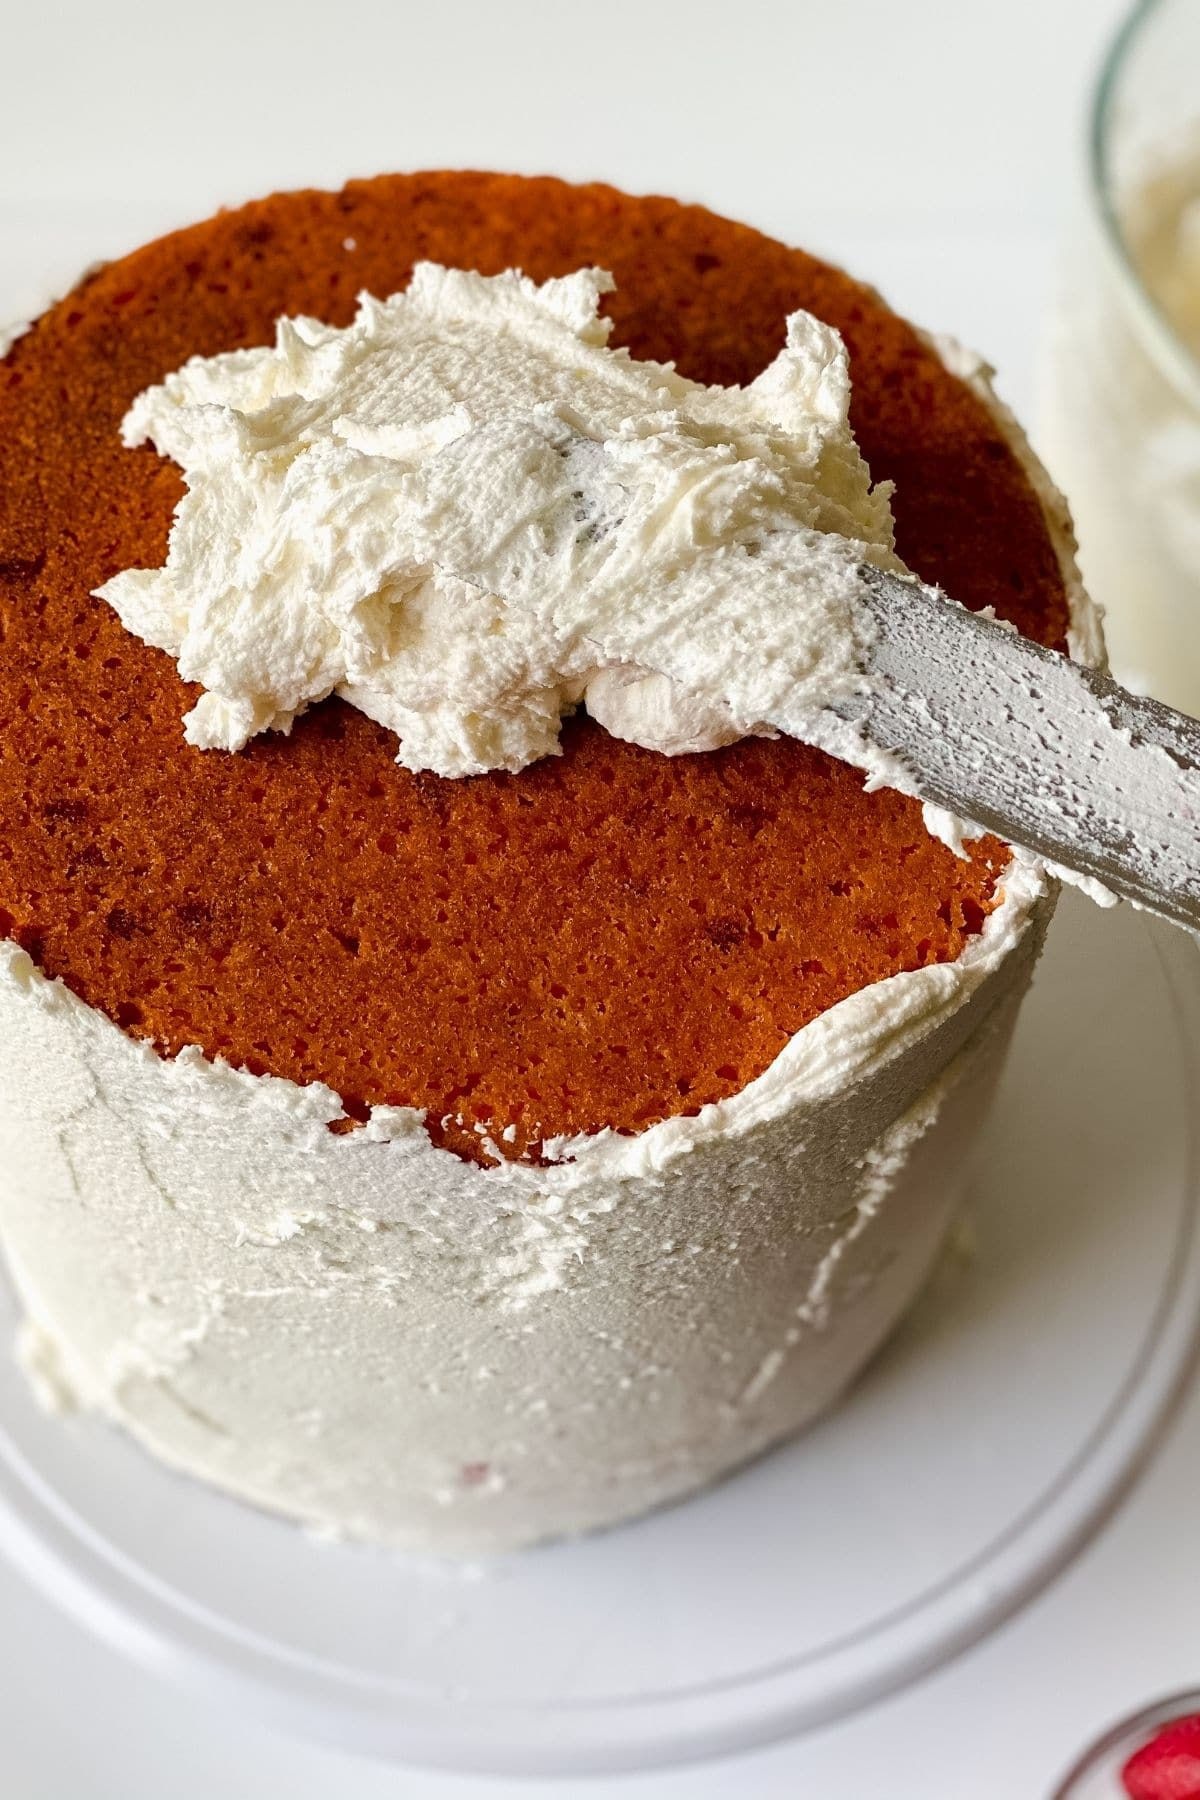 Adding frosting to top of cake